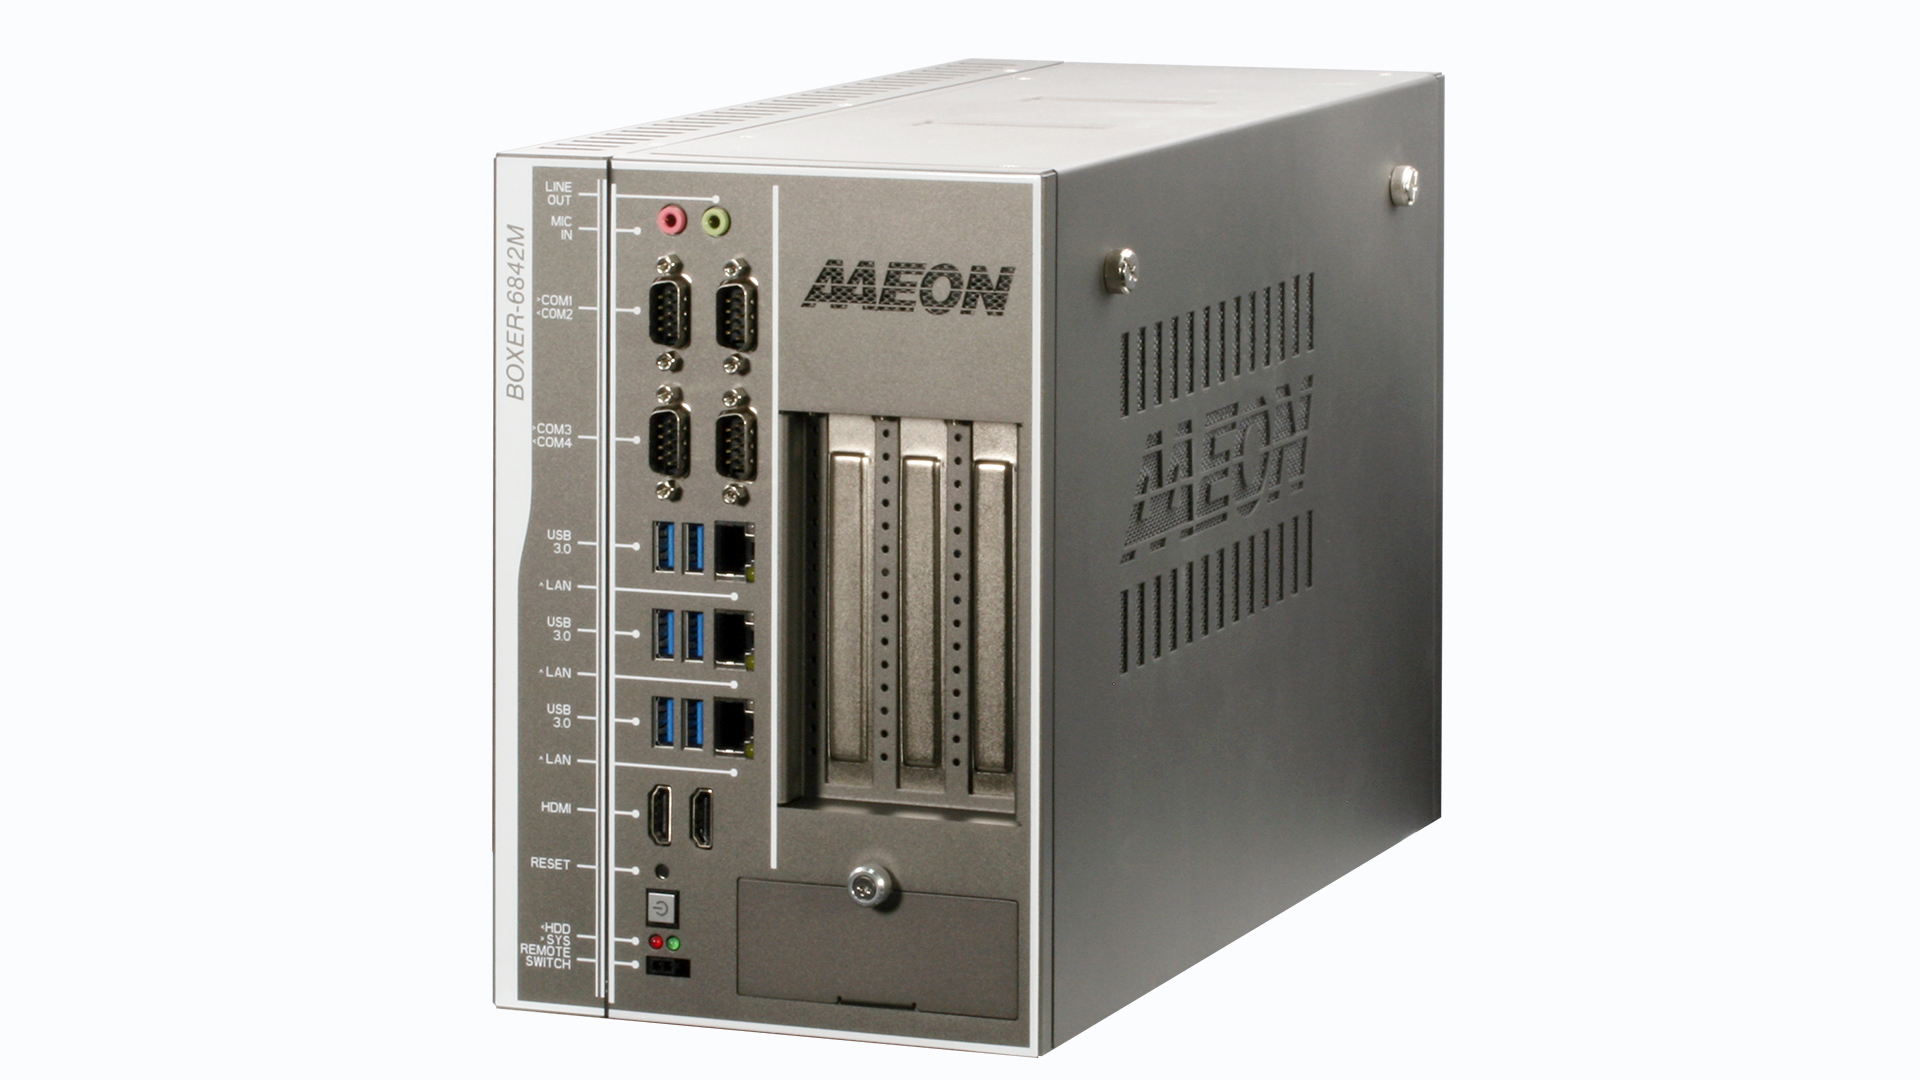 Edge AI Fanless Embedded Industrial Controller